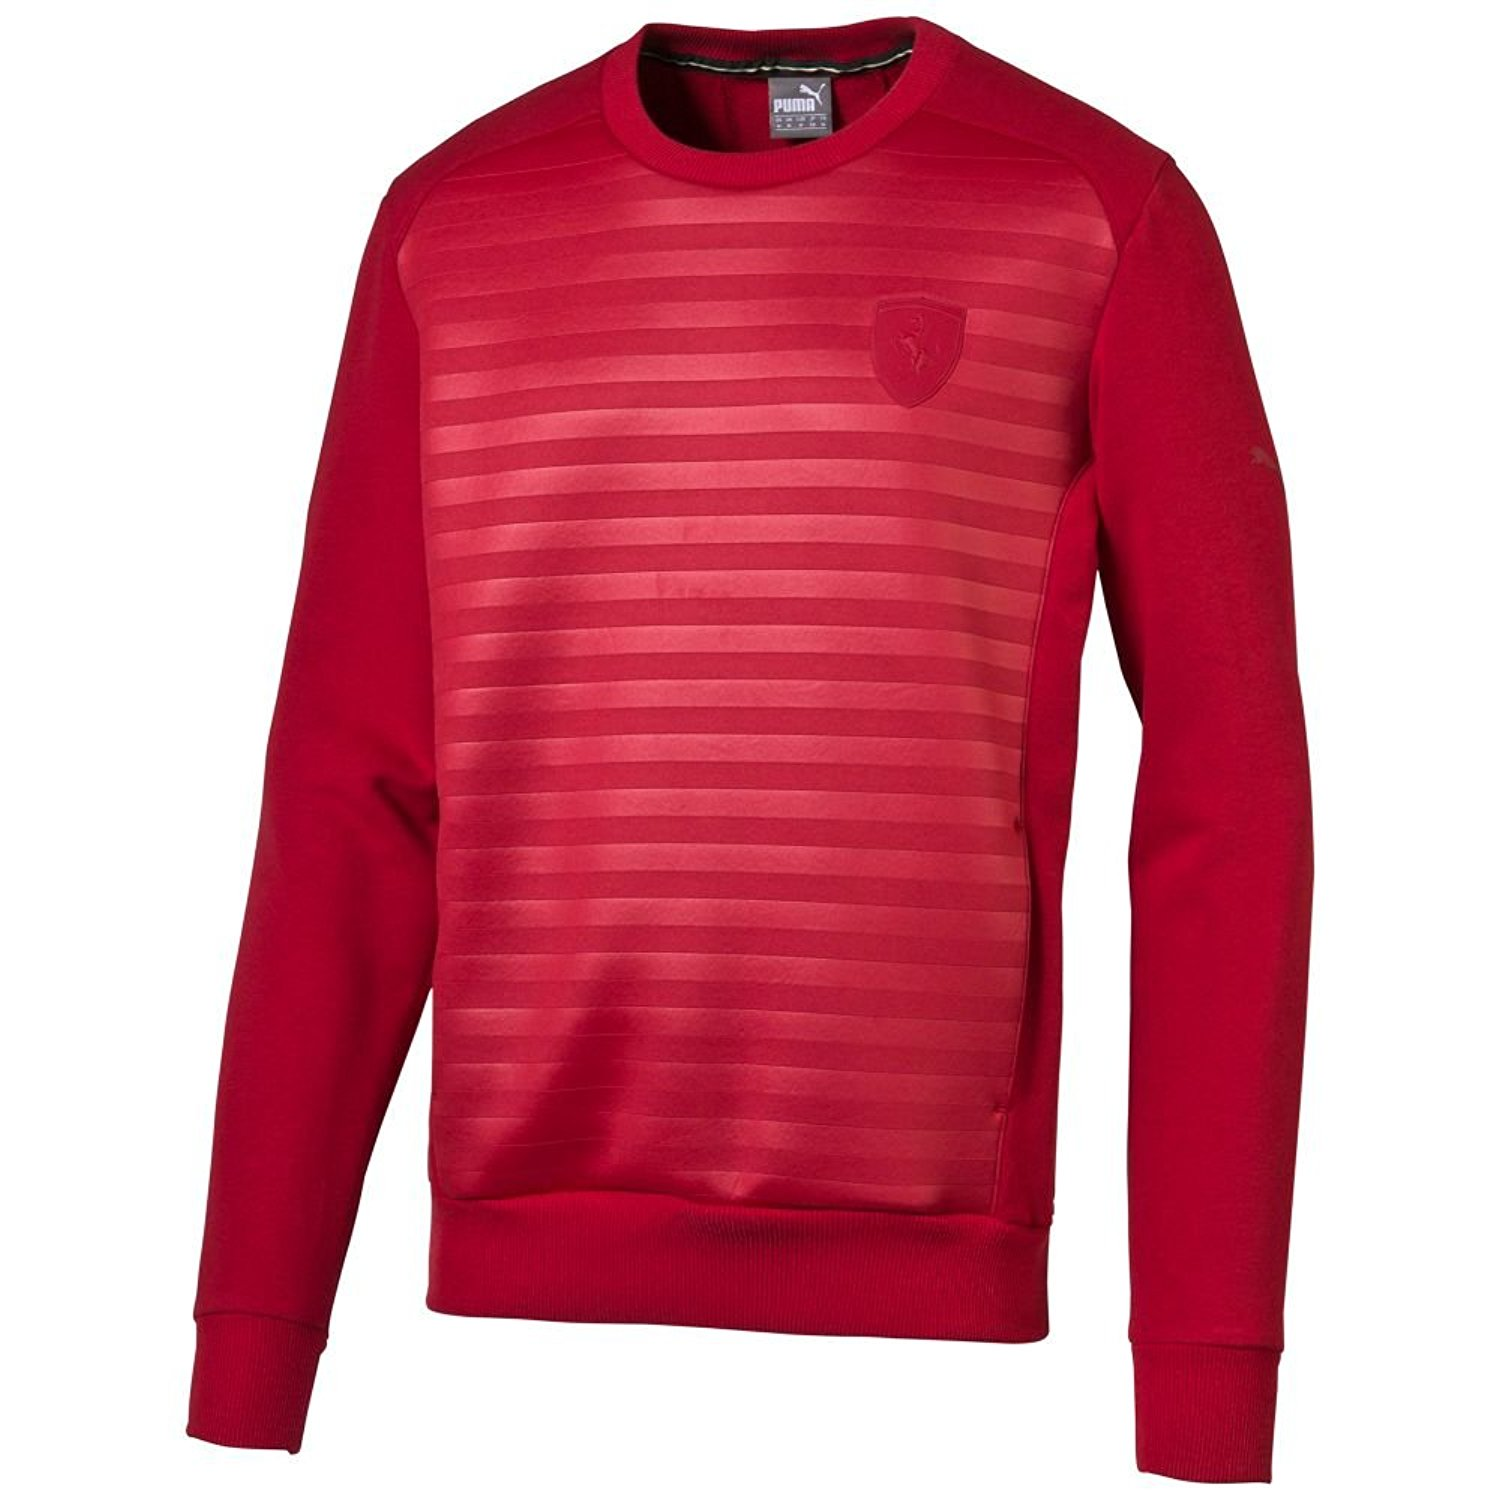 439b21ffef0c Get Quotations · Puma Mens Ferrari Concept Crew Neck Sweatshirt